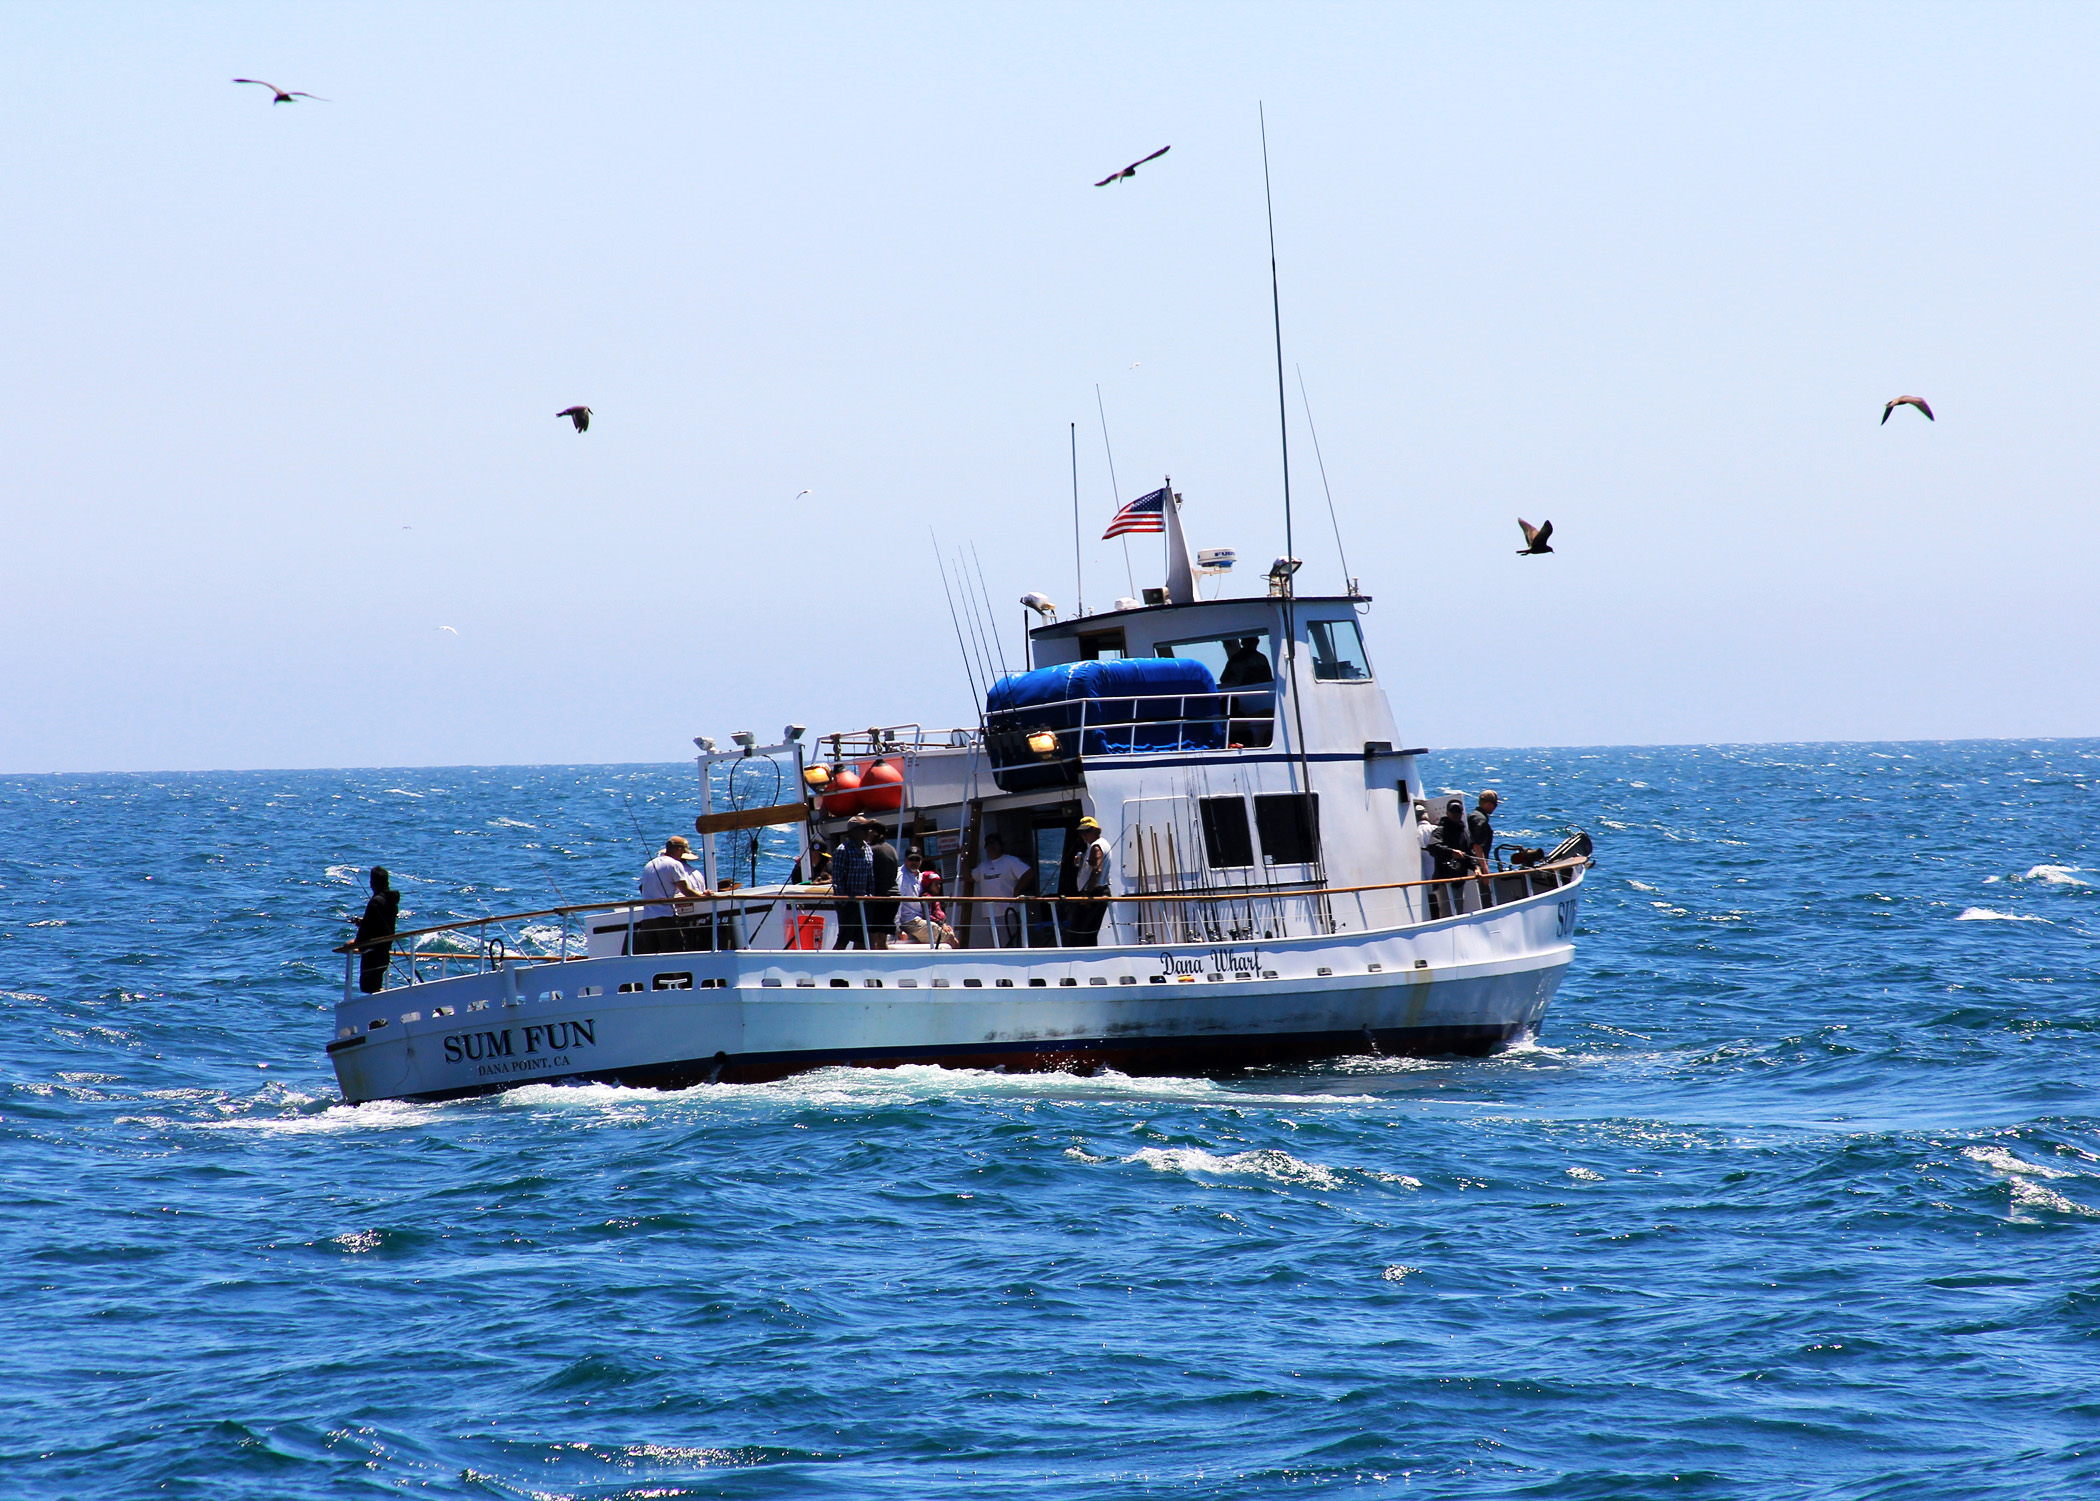 Cooking Passengers' Fish Aboard a Sport Fishing Boat? | California ...